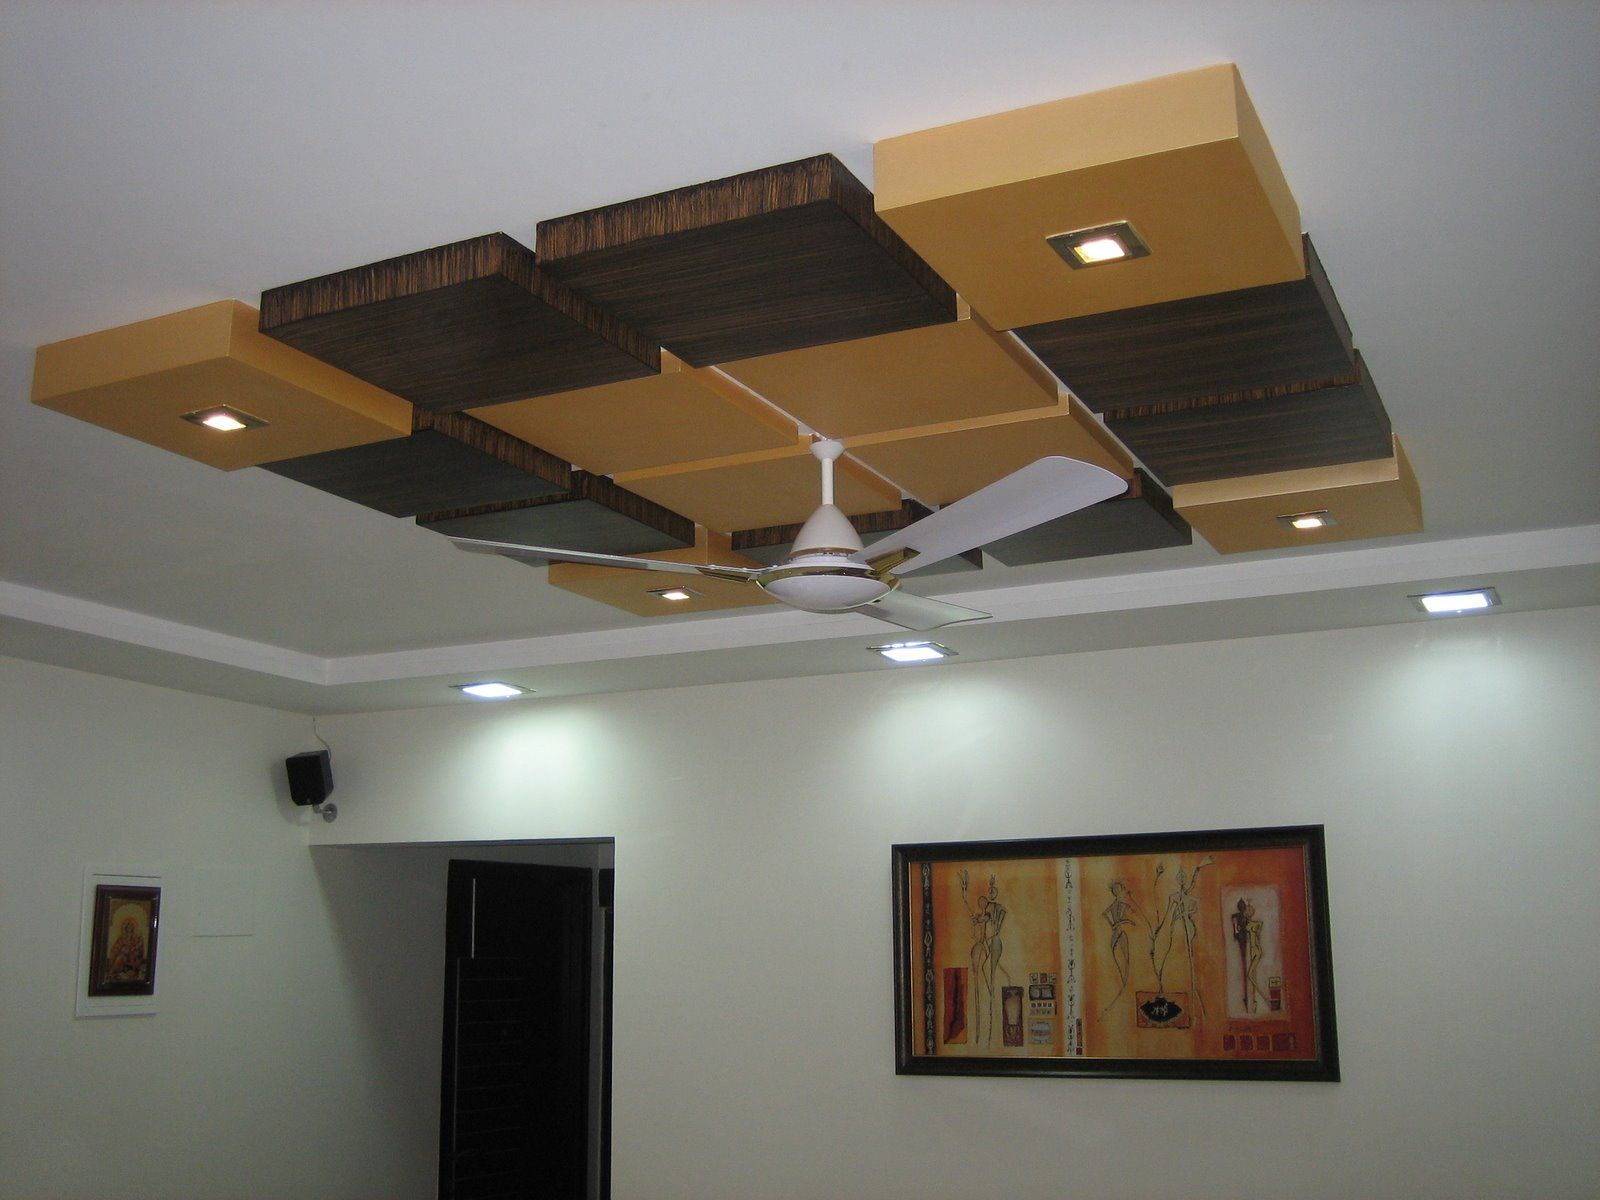 Astonishing Beautiful Bedroom Designs Ceiling With Square Brown Accesories Largest Home Design Picture Inspirations Pitcheantrous